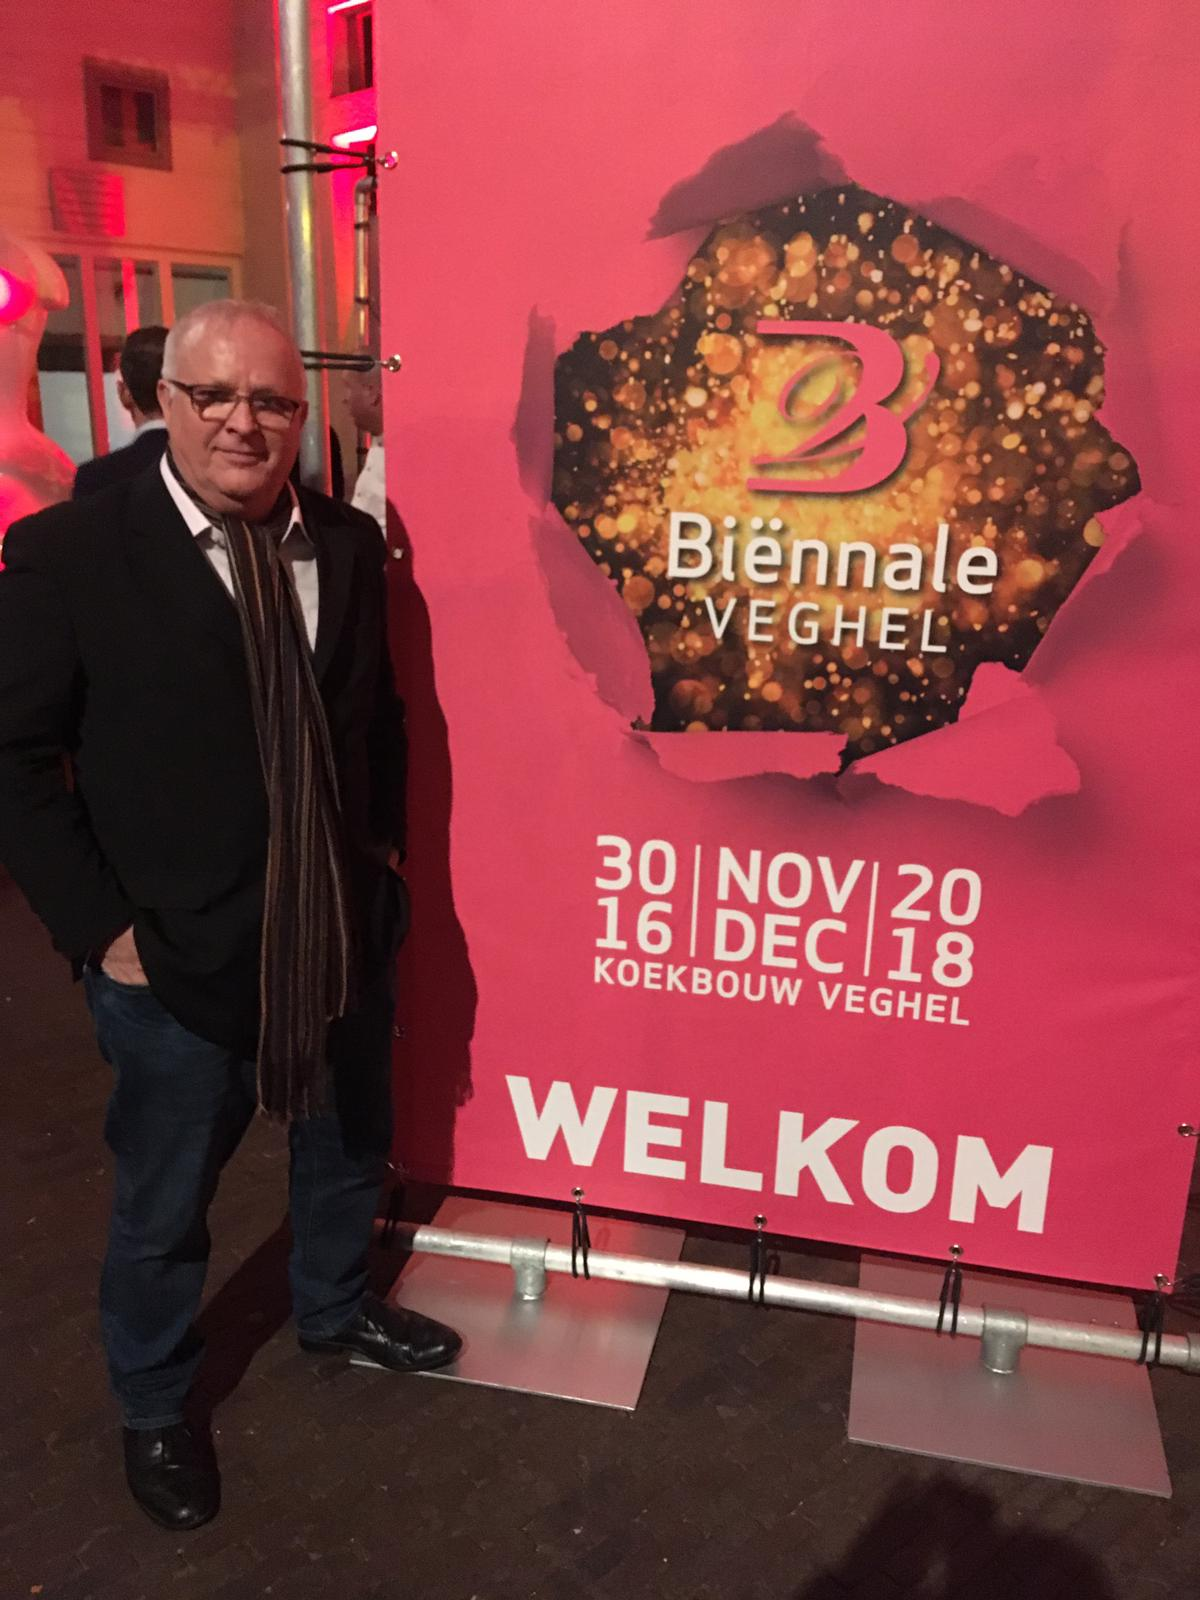 Tom at the Biënnale Veghel 2018 exhibition